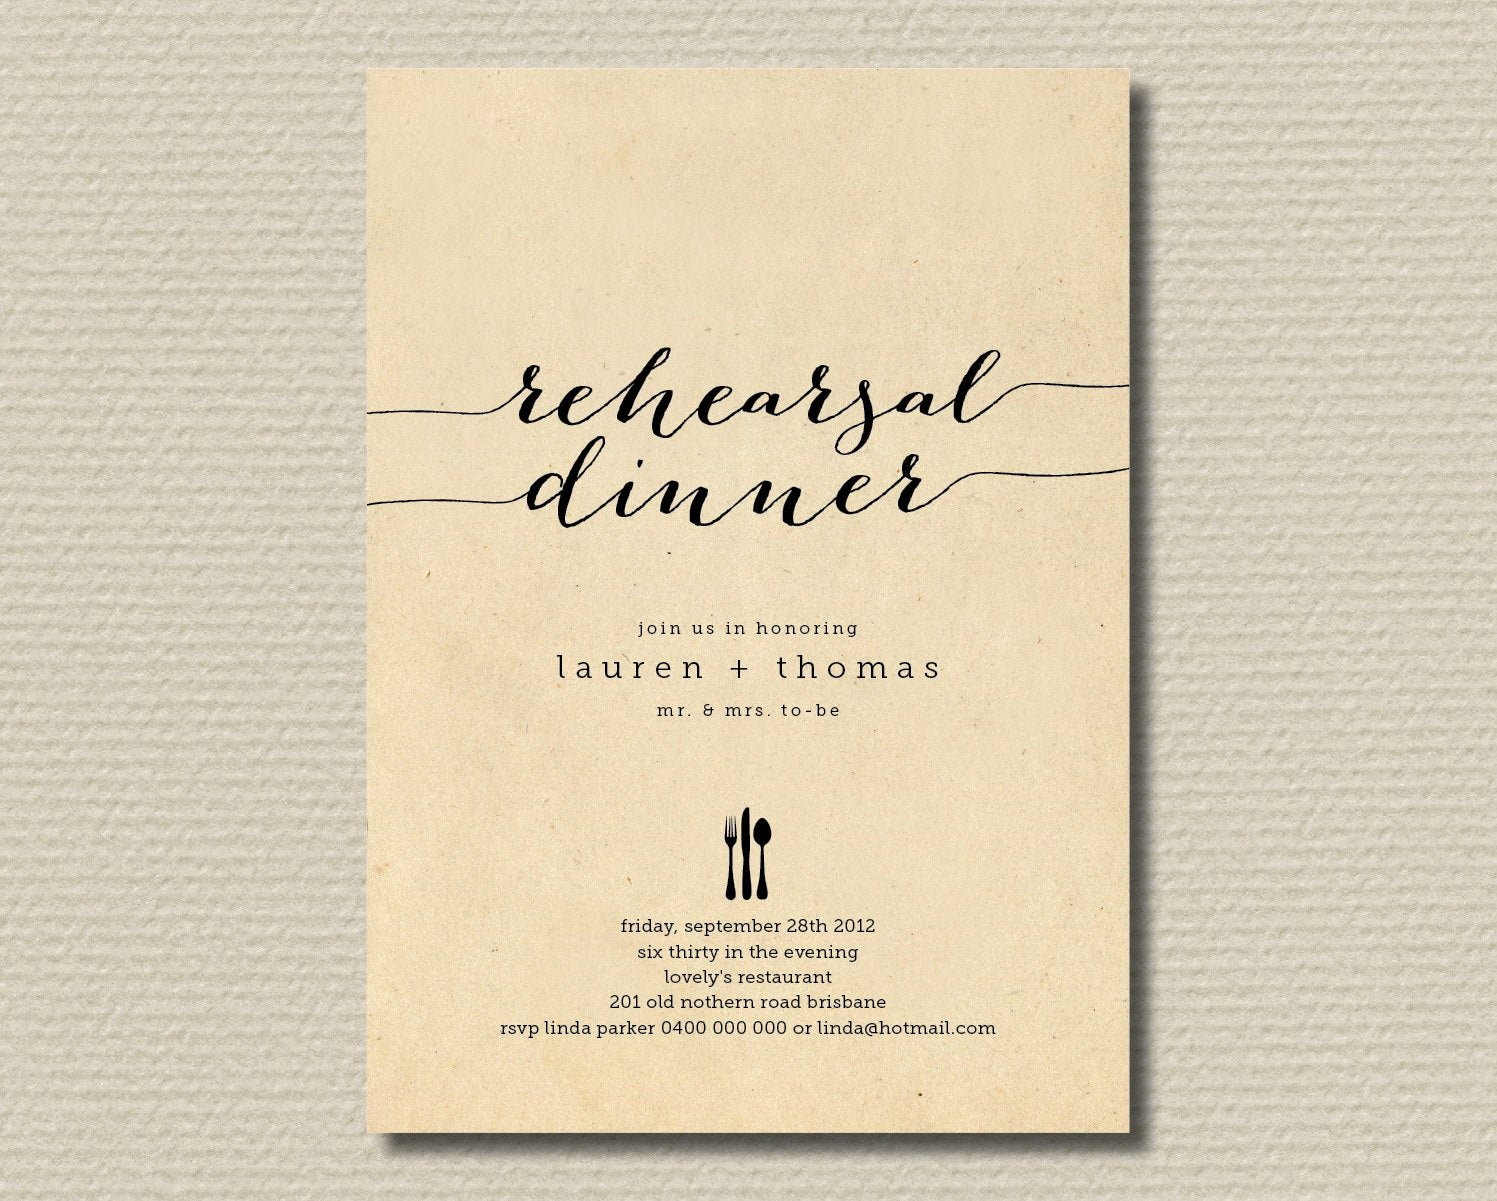 Wedding Rehearsal Dinner Invitations Template Best Of Printable Wedding Rehearsal Dinner Invitation by